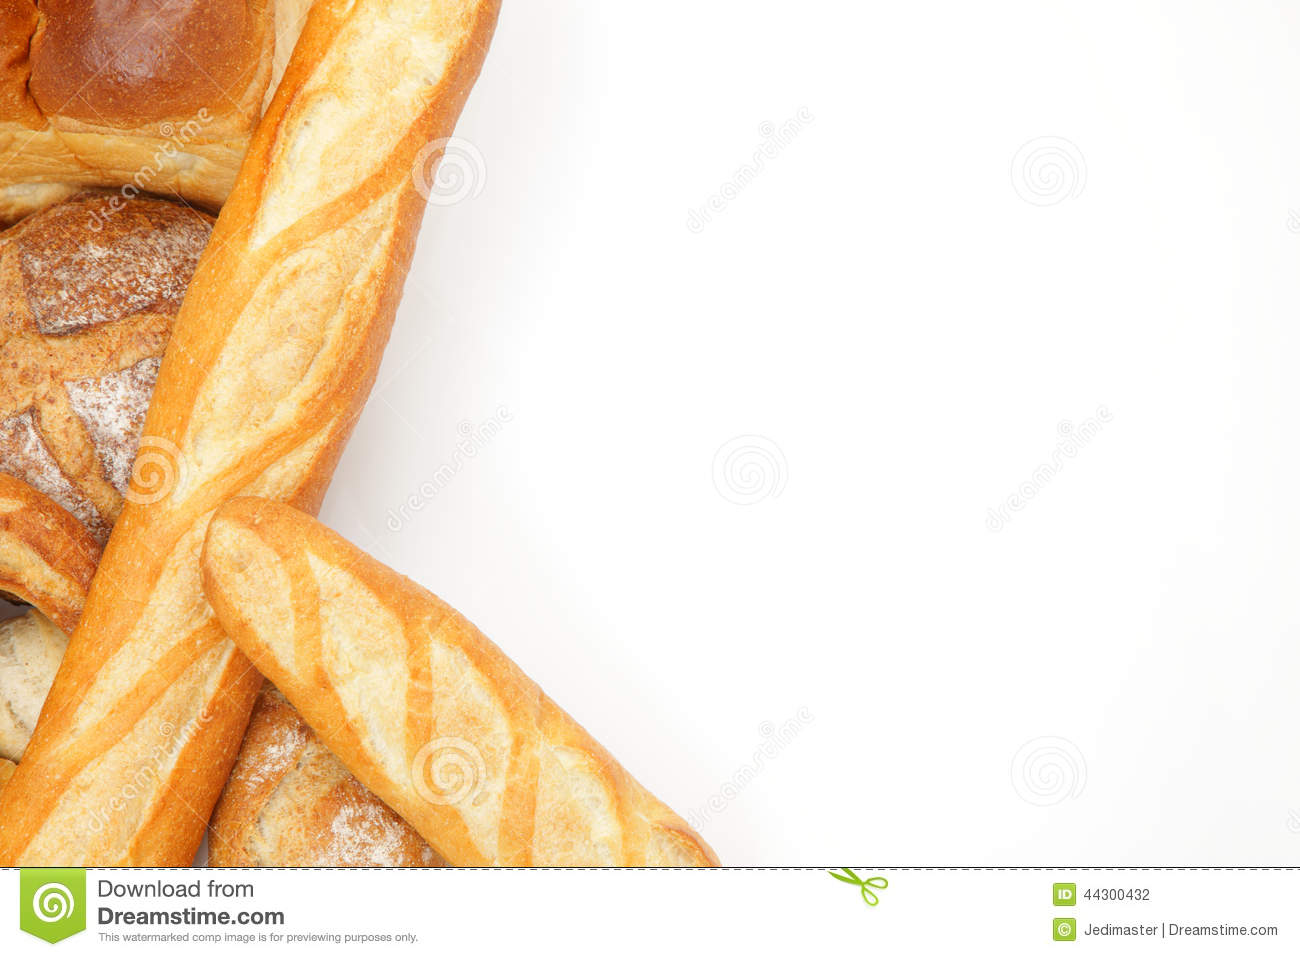 Bread frame stock photo. Image of many, carbohydrate - 44300432